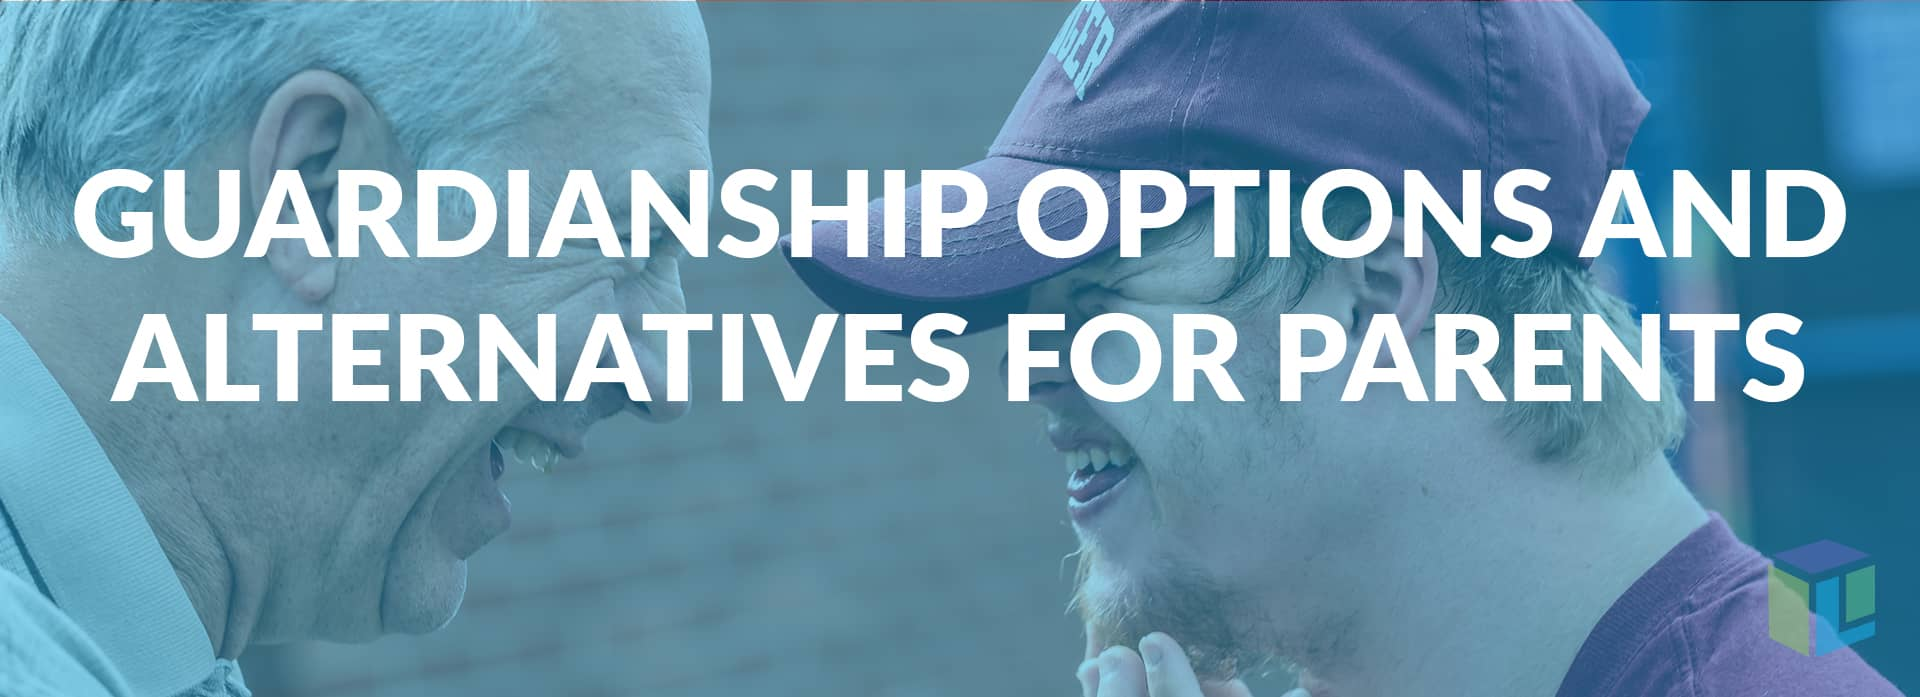 Guardianship Options And Alternatives For Parents